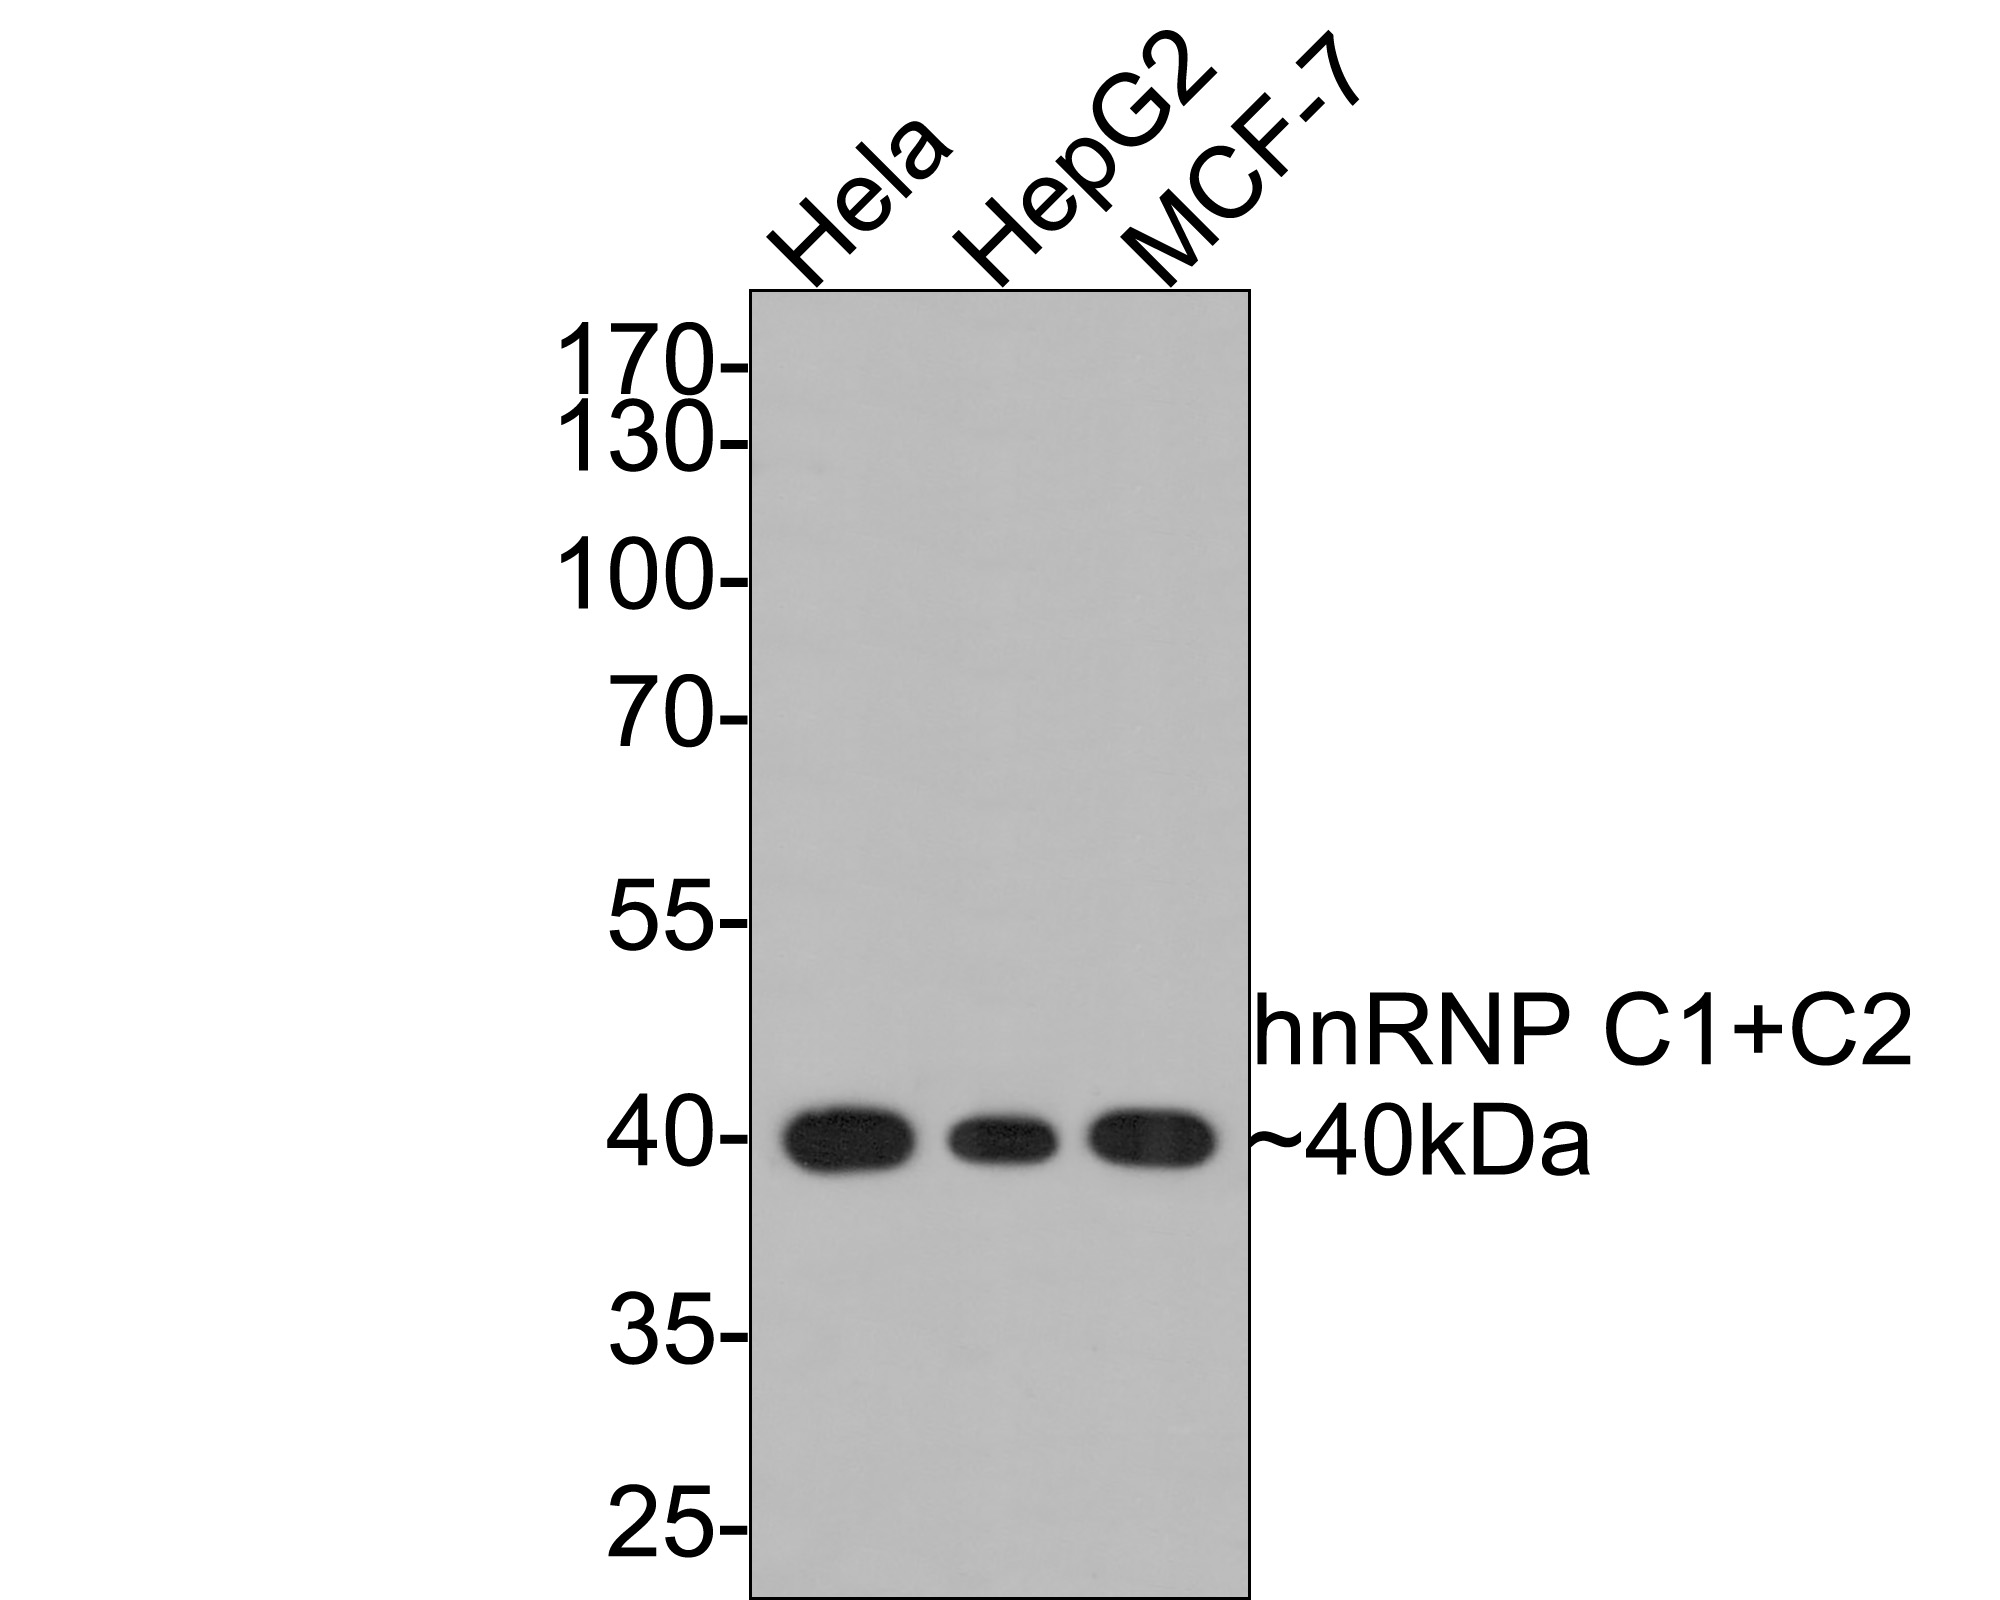 Western blot analysis of hnRNP C1+C2 on different lysates using anti-hnRNP C1+C2 antibody at 1/1,000 dilution.<br /> Positive control: <br /> Lane 1: Hela <br /> Lane 2: MCF-7 <br /> Lane 3: HepG2